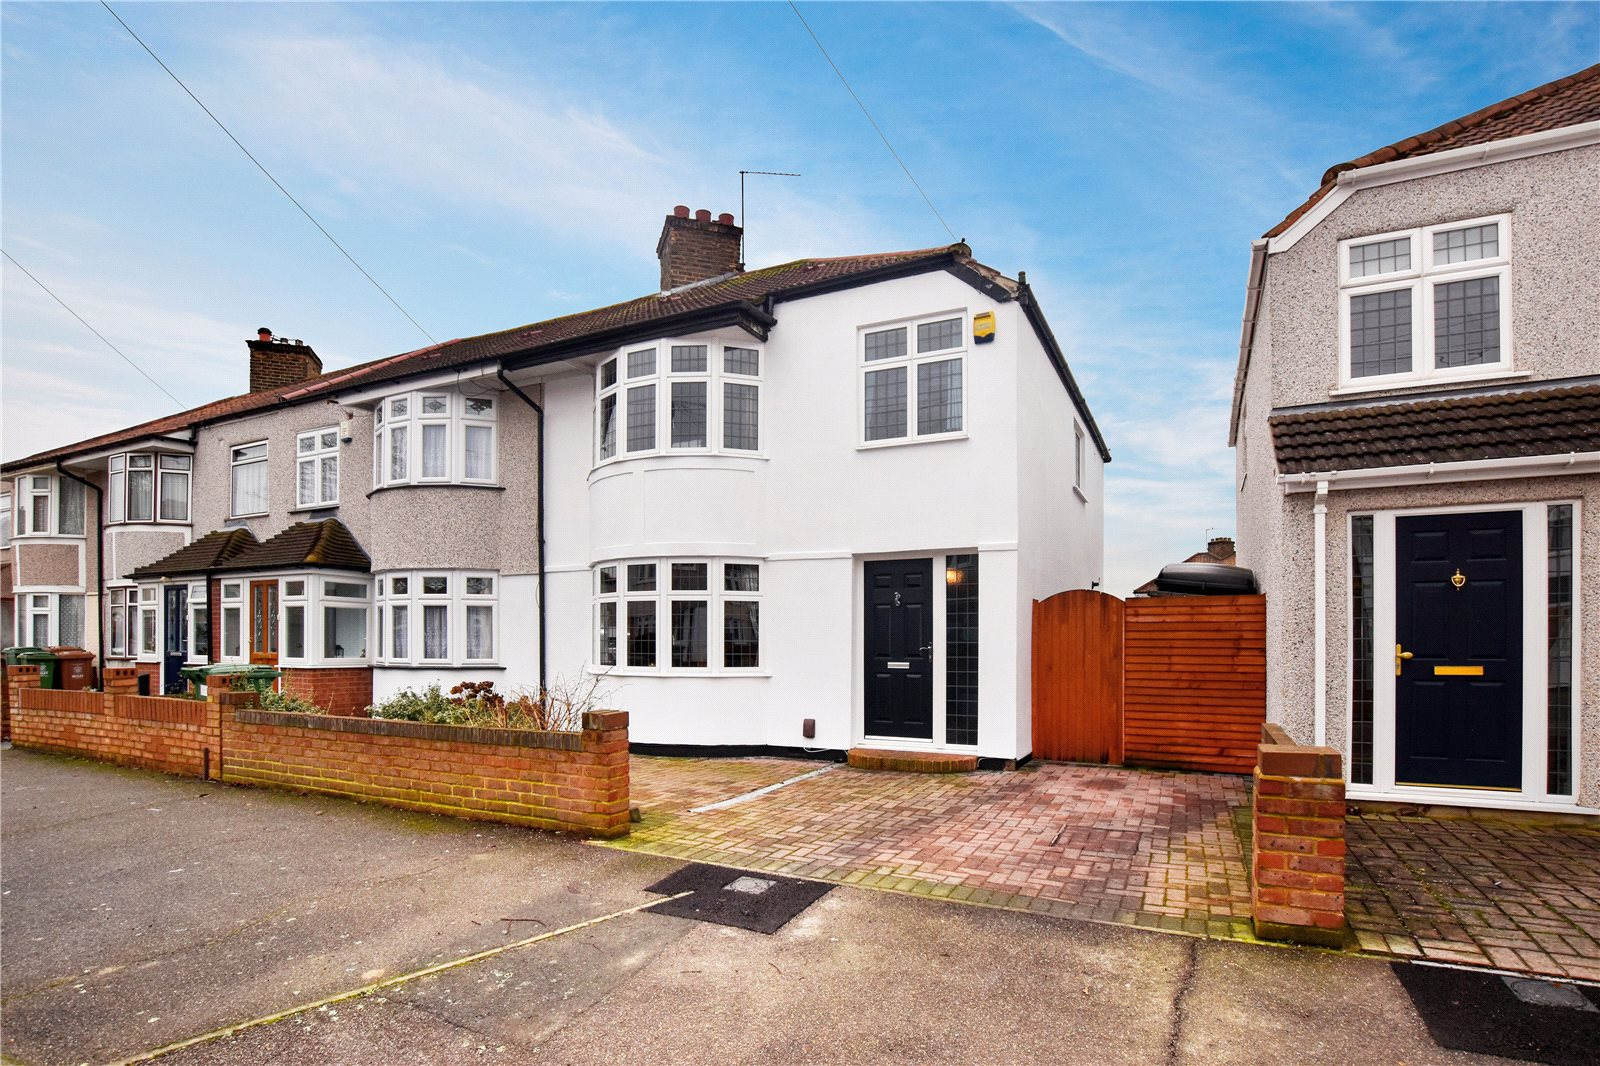 Oldfield Road, Bexleyheath, Kent, DA7